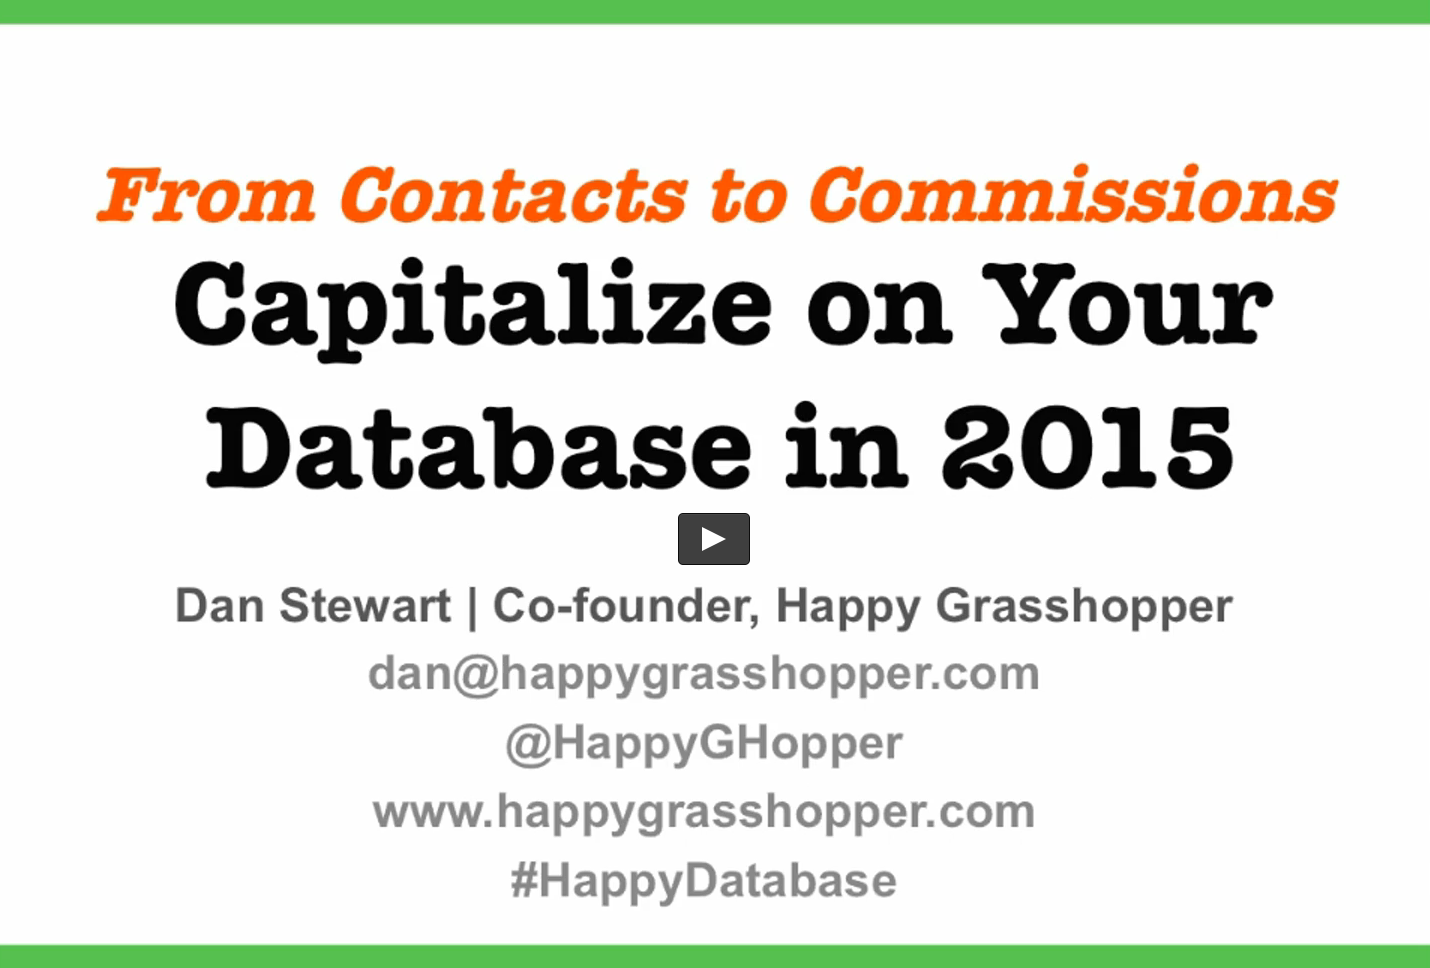 Capitalize on your database in 2015 using Happy Grasshopper